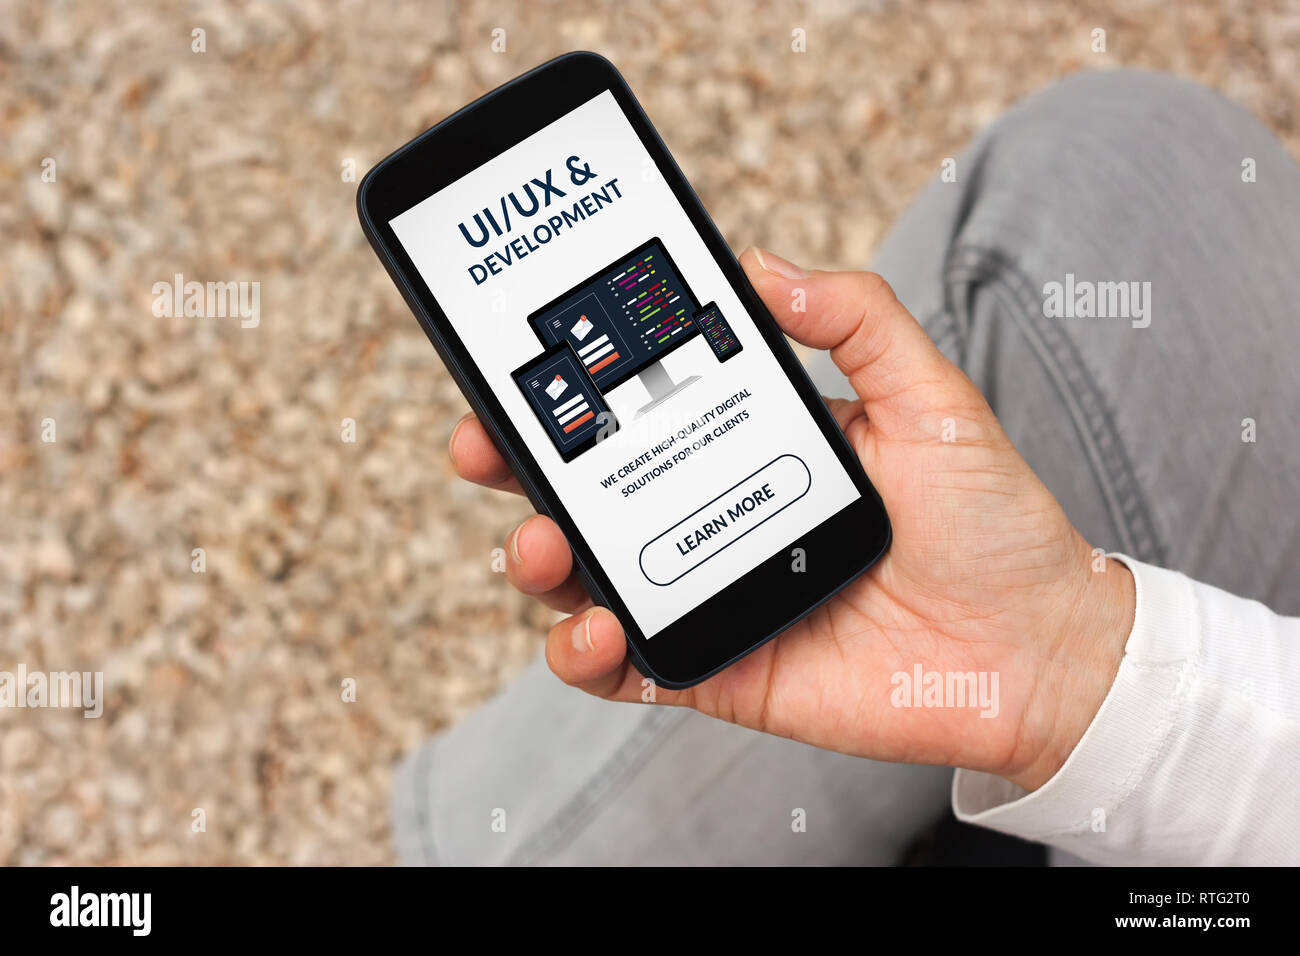 Hand holding smart phone with UI/UX design and development concept on screen. All screen content is designed by me - Stock Image